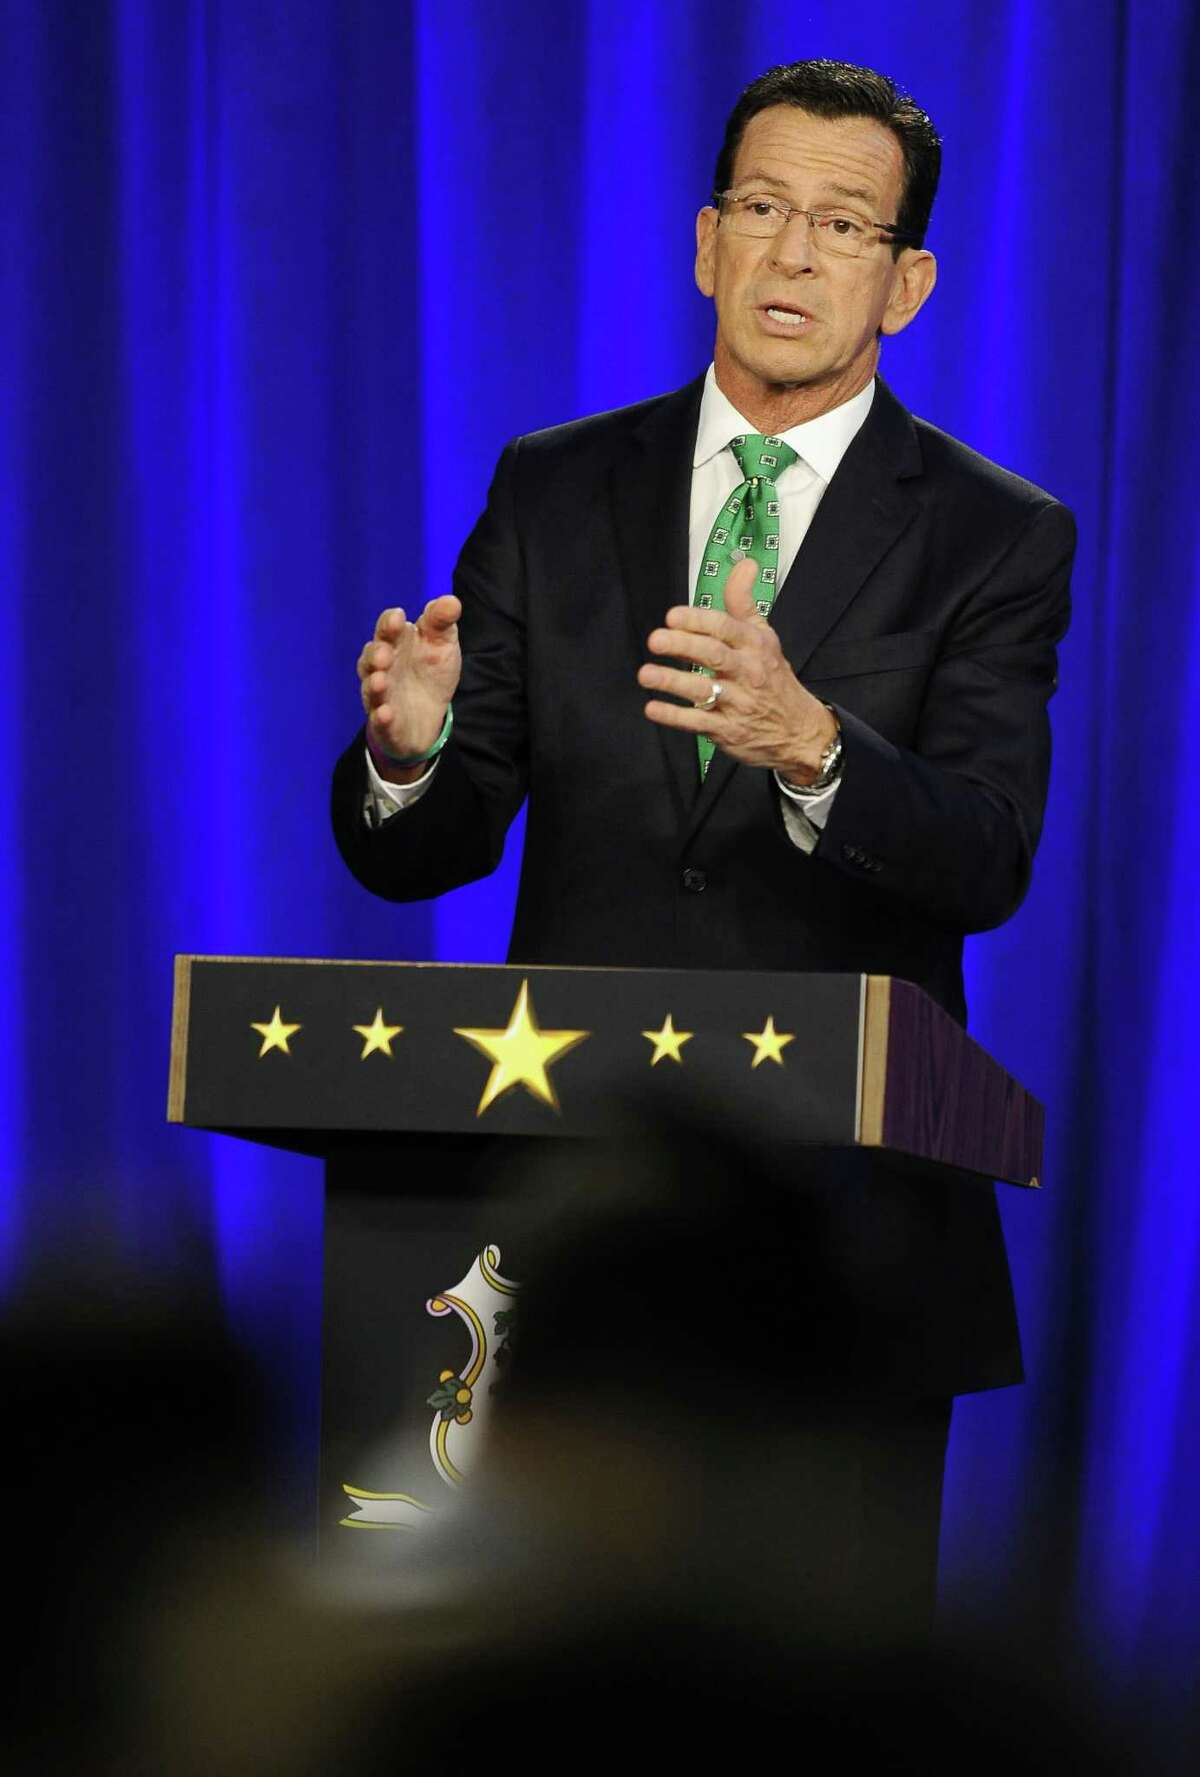 Gov. Dannel P. Malloy speaks during a debate with Republican candidate for governor Tom Foley Thursday in Hartford.